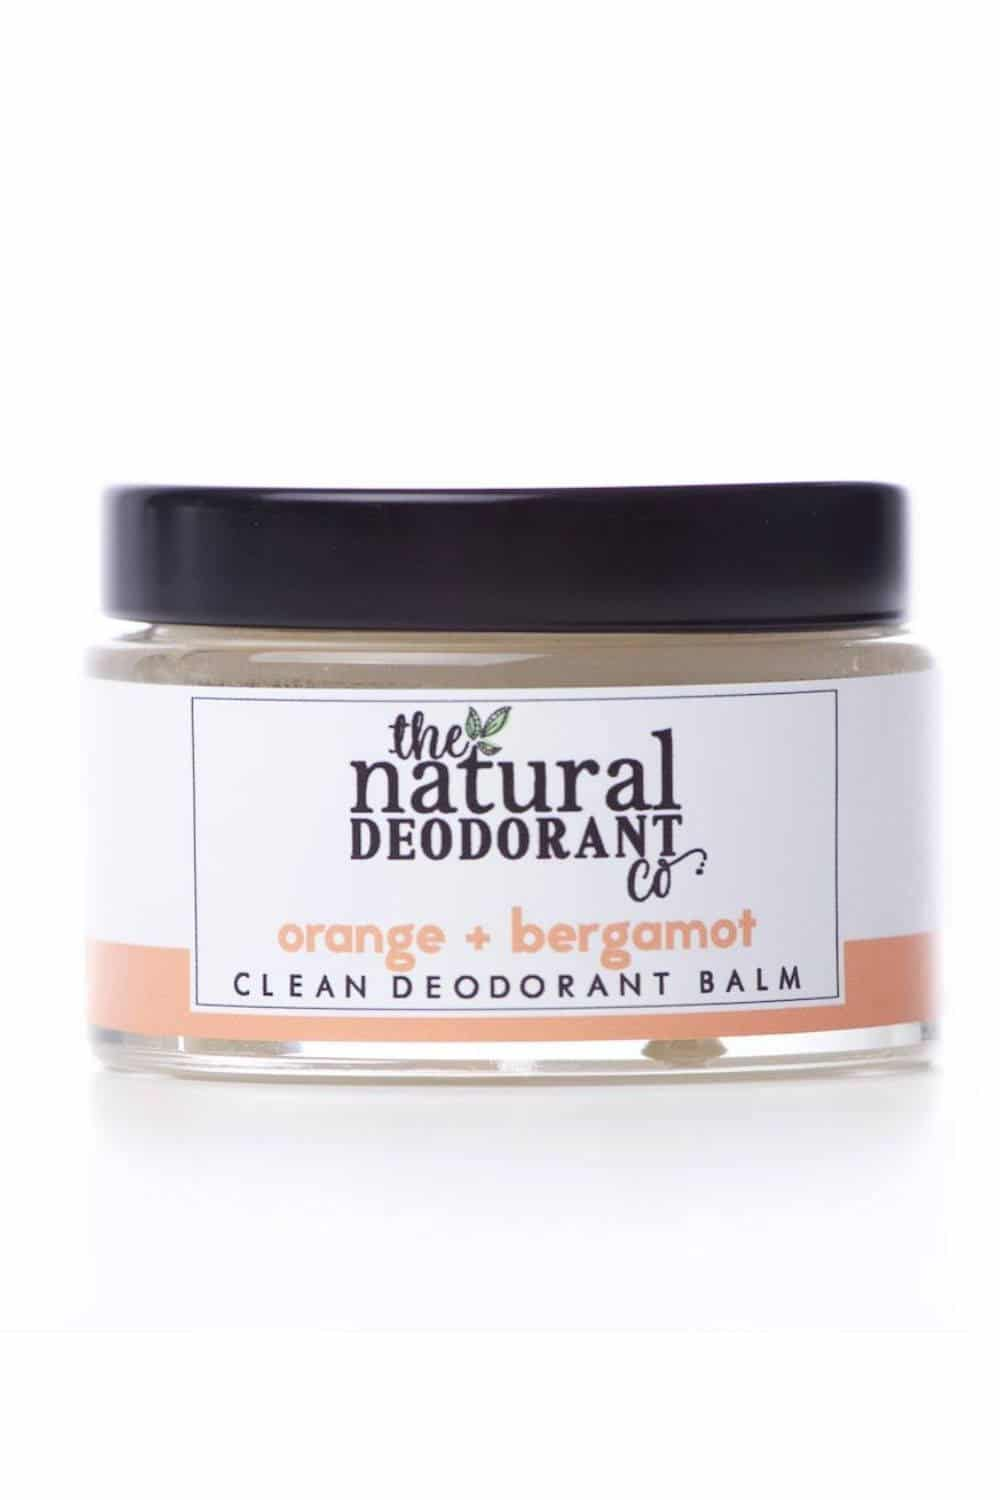 The ethical personal care market has exploded with options in the last few years which is great. The problem though, is trying to find eco friendly deodorants that are effective. So, we've made a list of our favorites that are fit for purpose! Image by The Natural Deodorant Co. #ecofriendlydeodorant #sustainablejungle